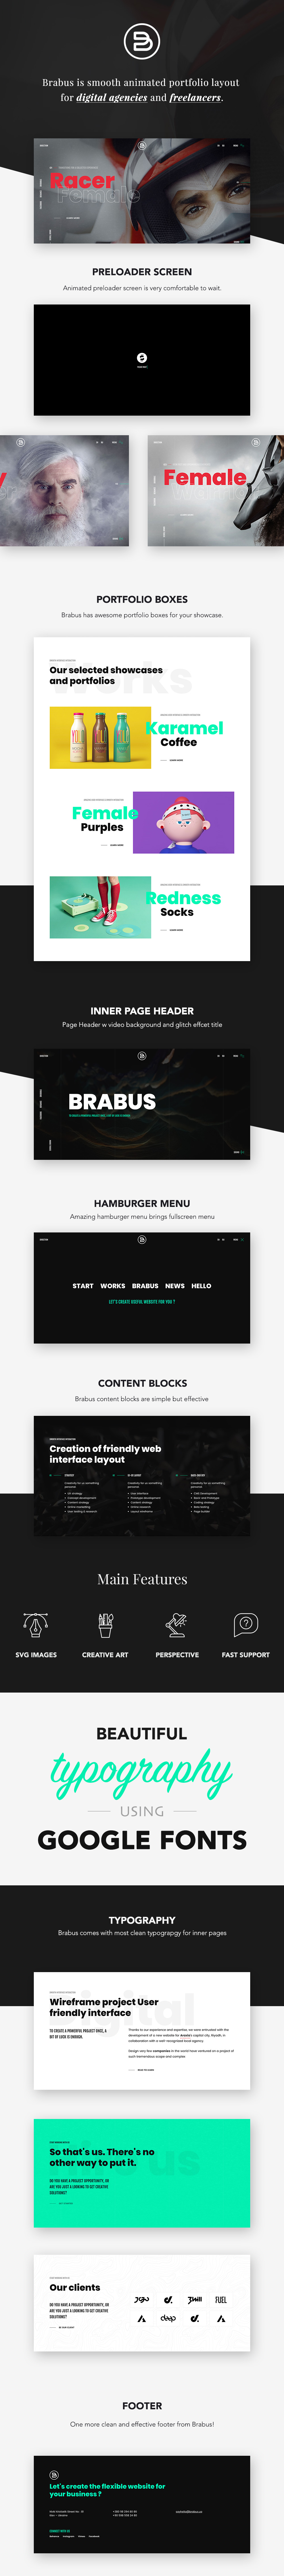 Brabus | Contemporary Portfolio Theme for Agencies - 1